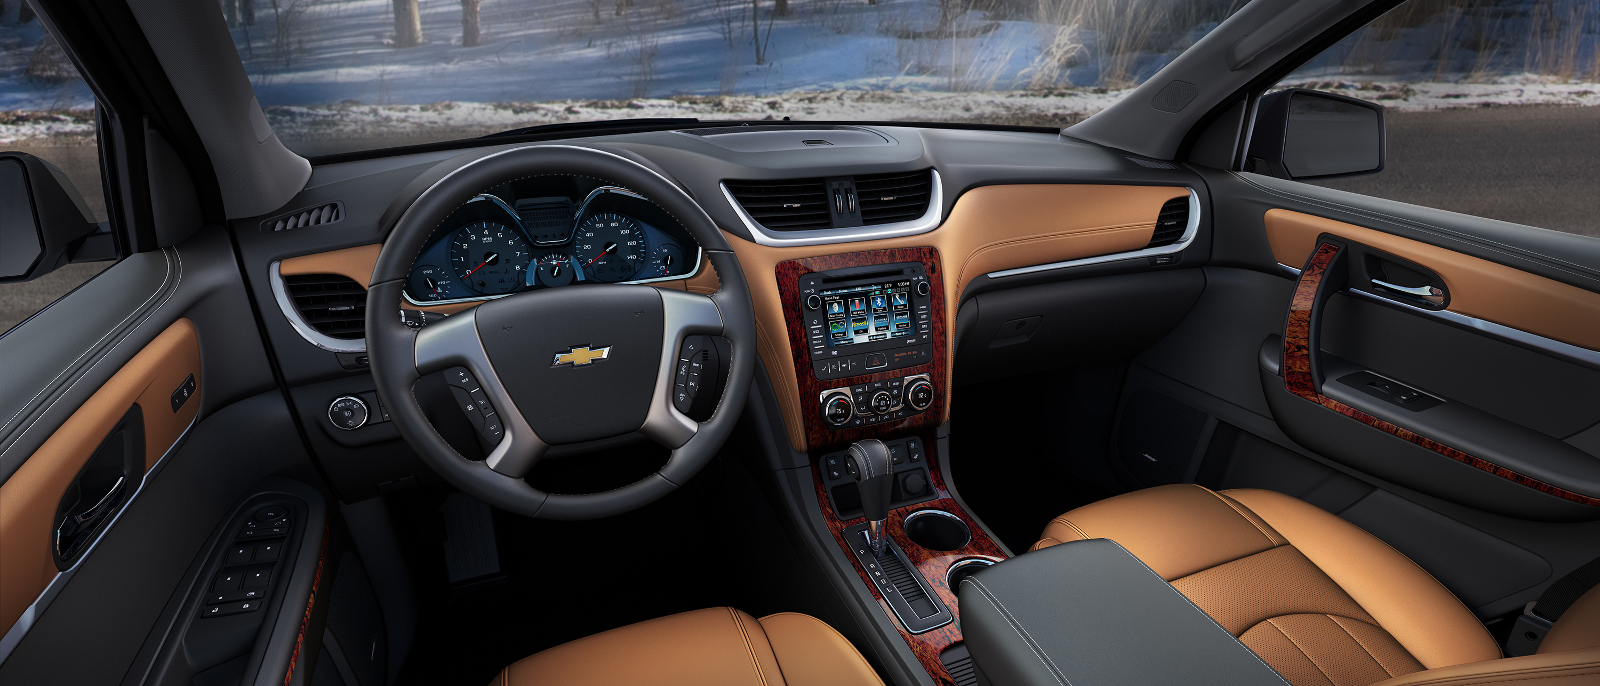 2016 Chevrolet Traverse LTZ Interior